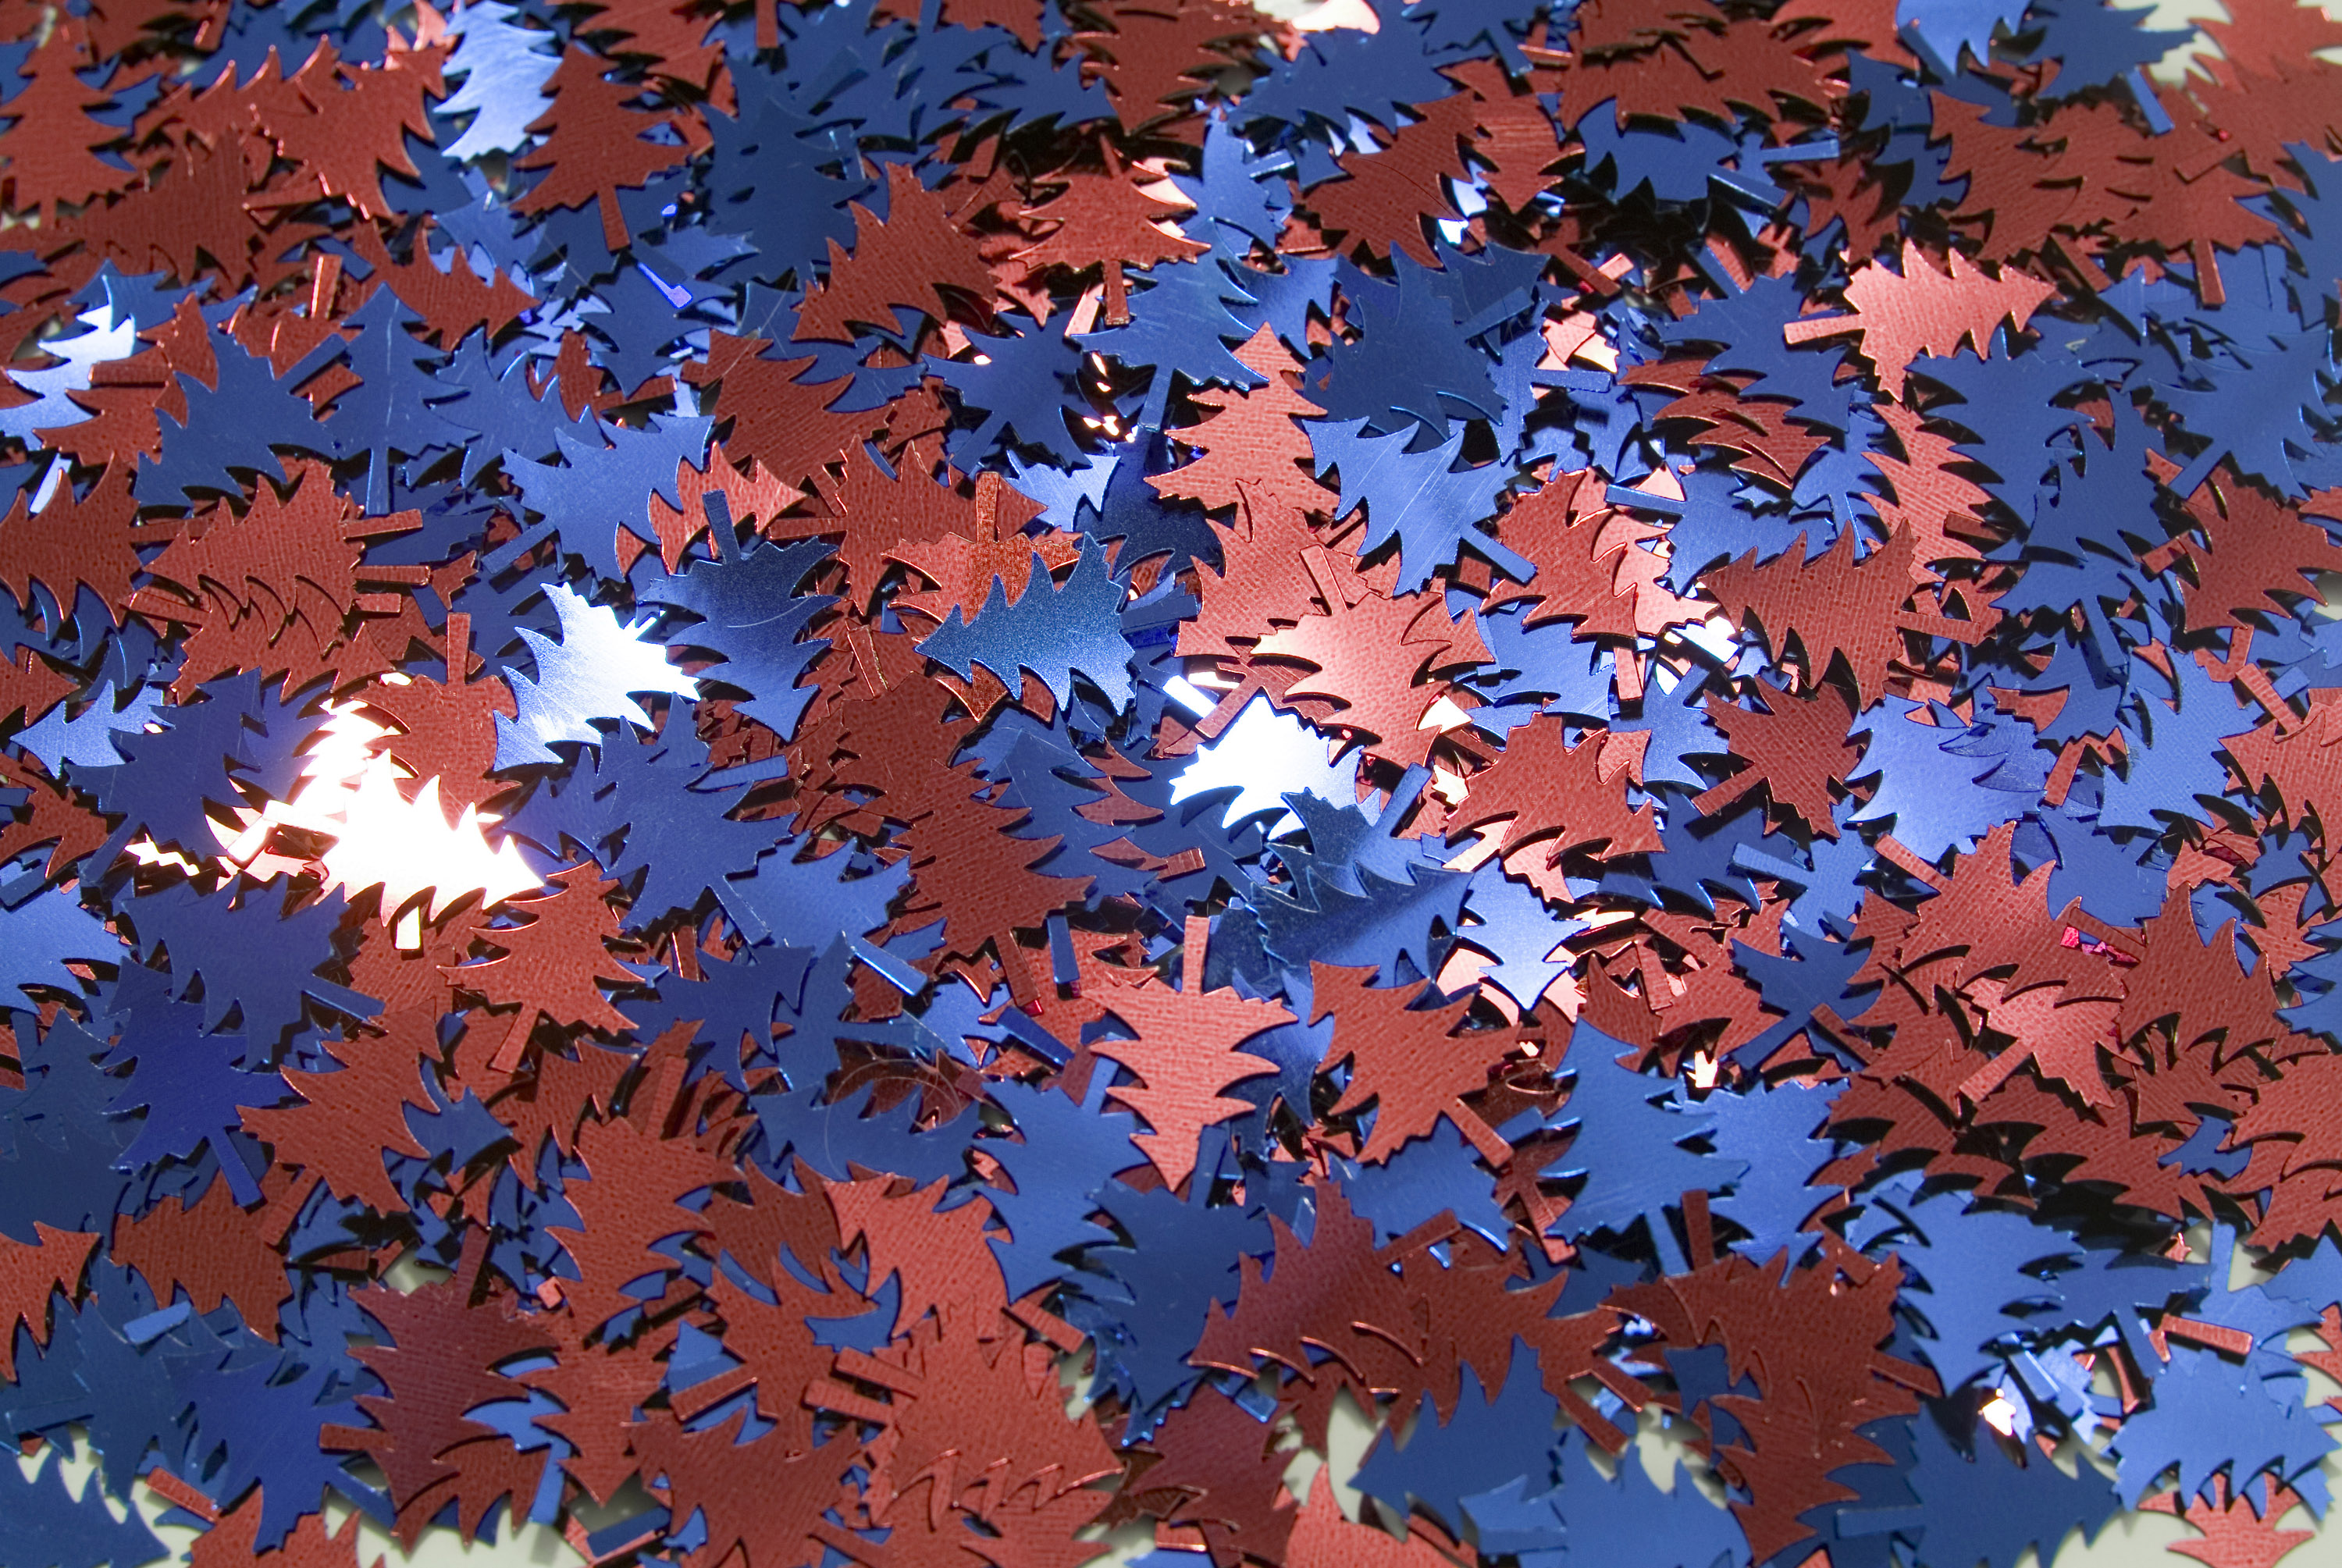 hundreds of metallic christmas tree shapes in red and blue